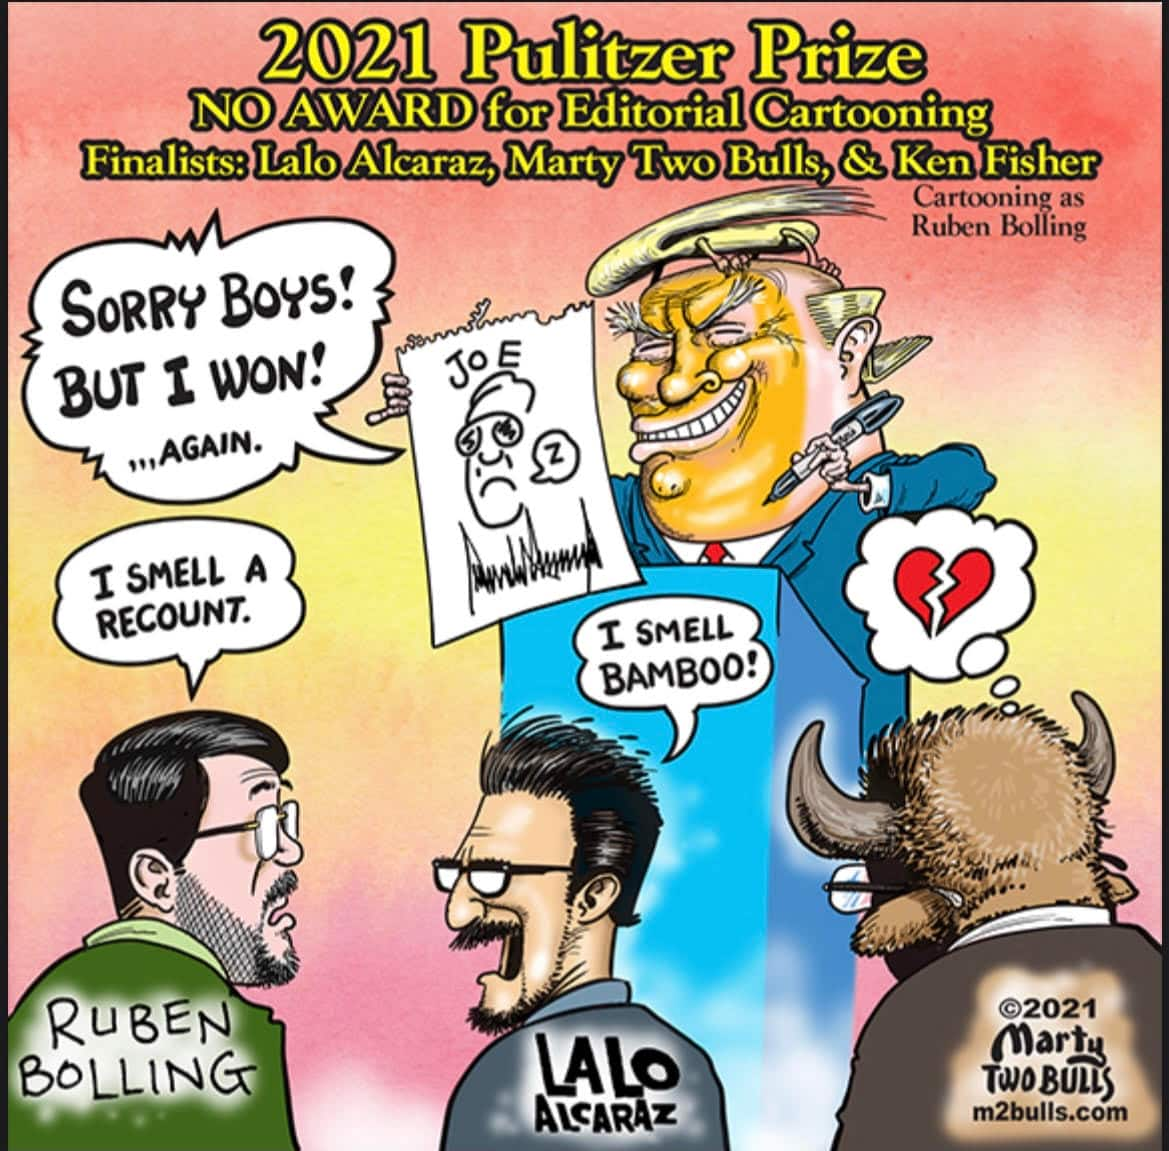 The Pulitzers did not pick a winner for cartooning this year. Artists feel 'mystified' and 'insulted.'